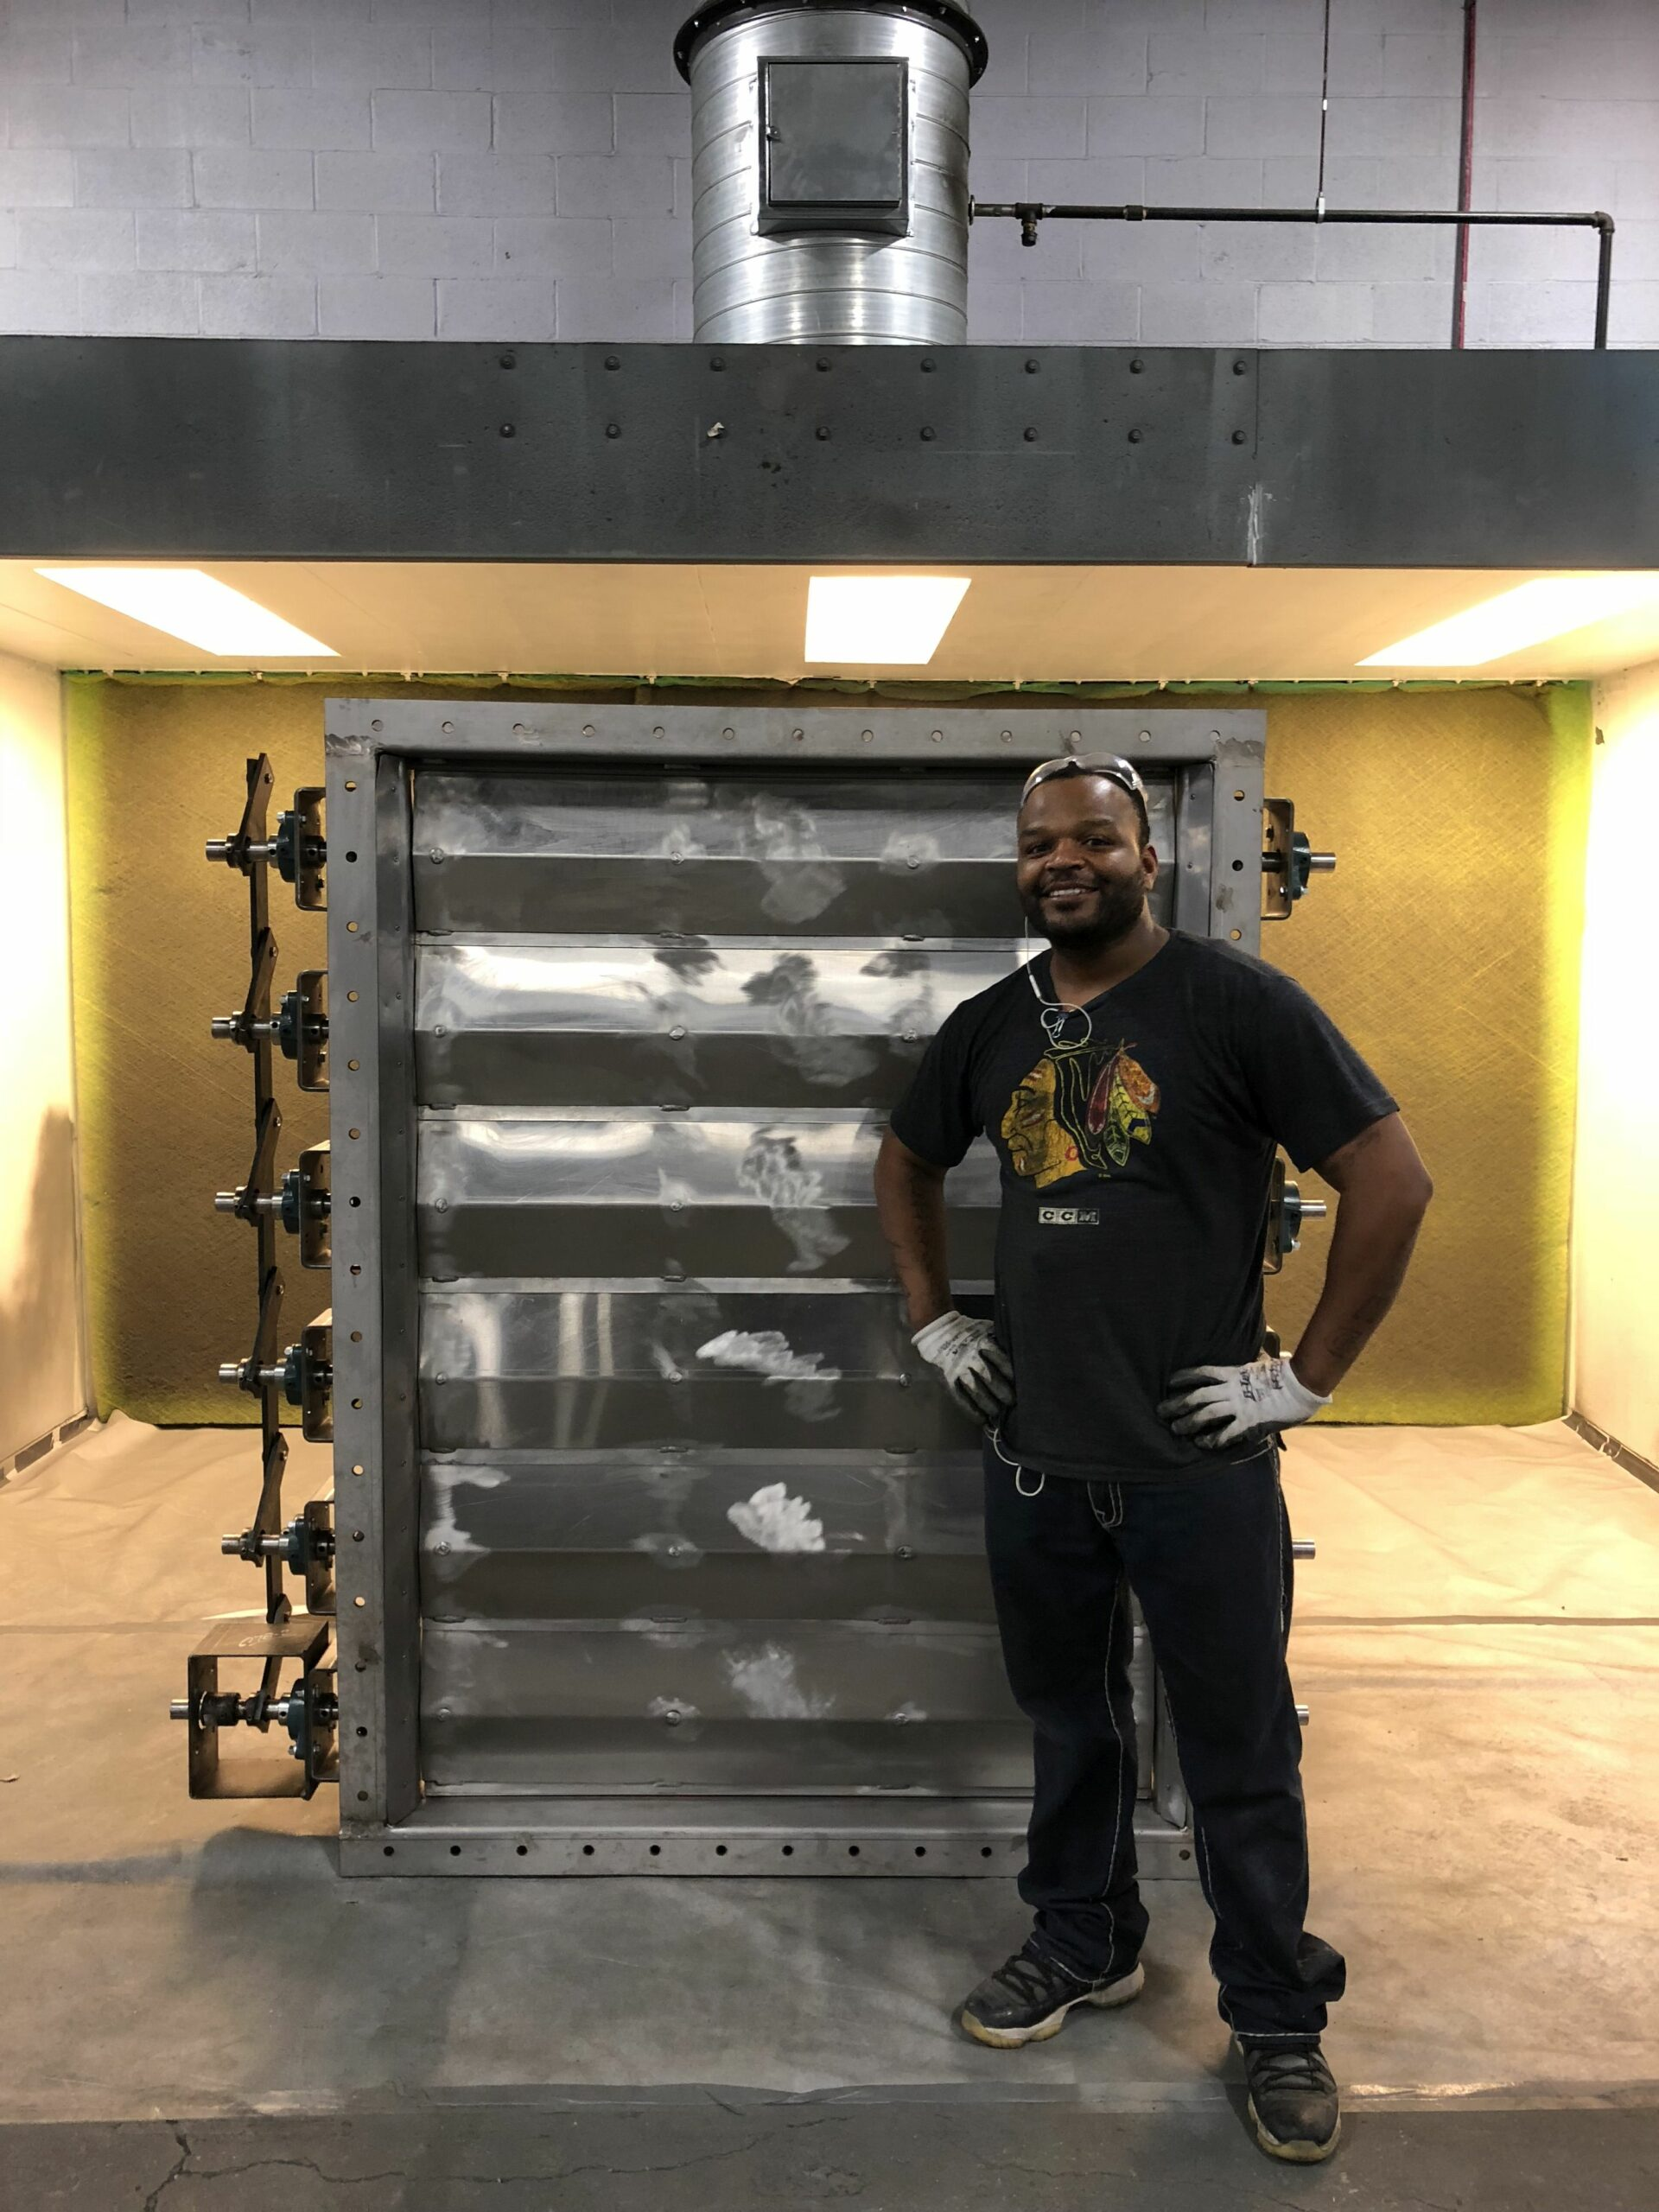 A Kelair shop worker smiles while standing next to a large louver damper.